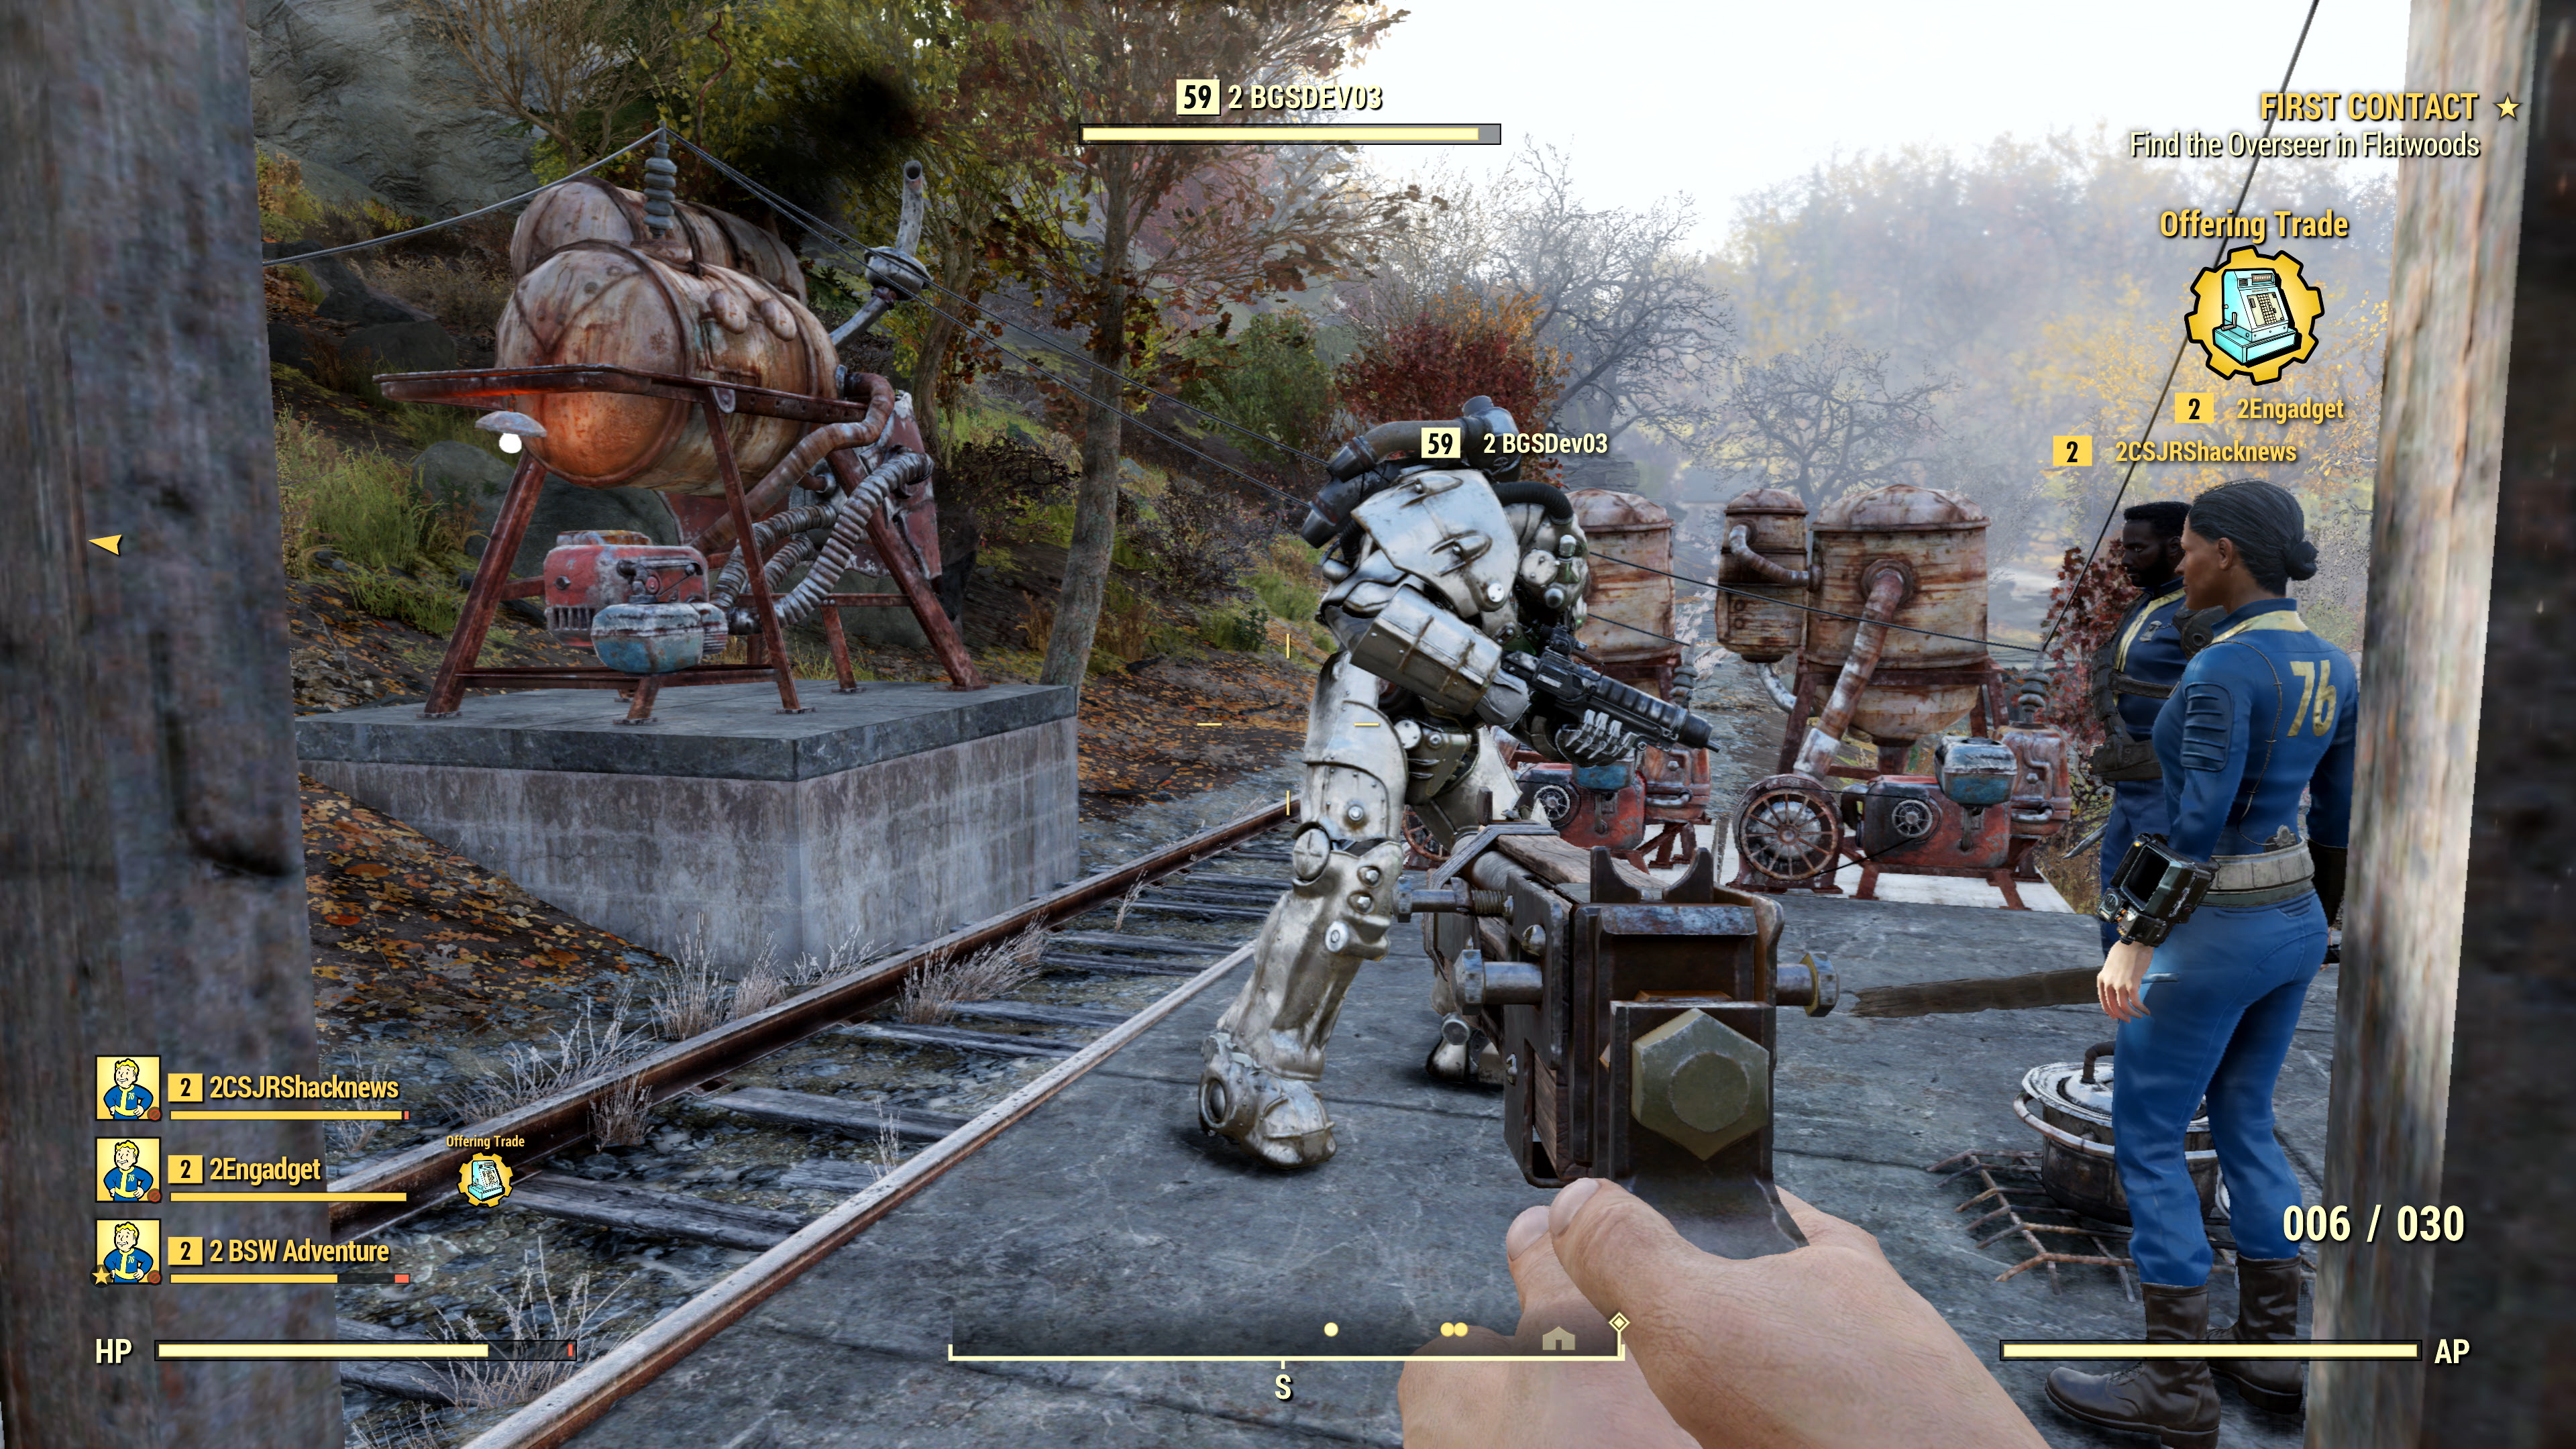 Fallout 76 The Enclave Are One Of Fallout 76 S Factions Bethesda Confirms